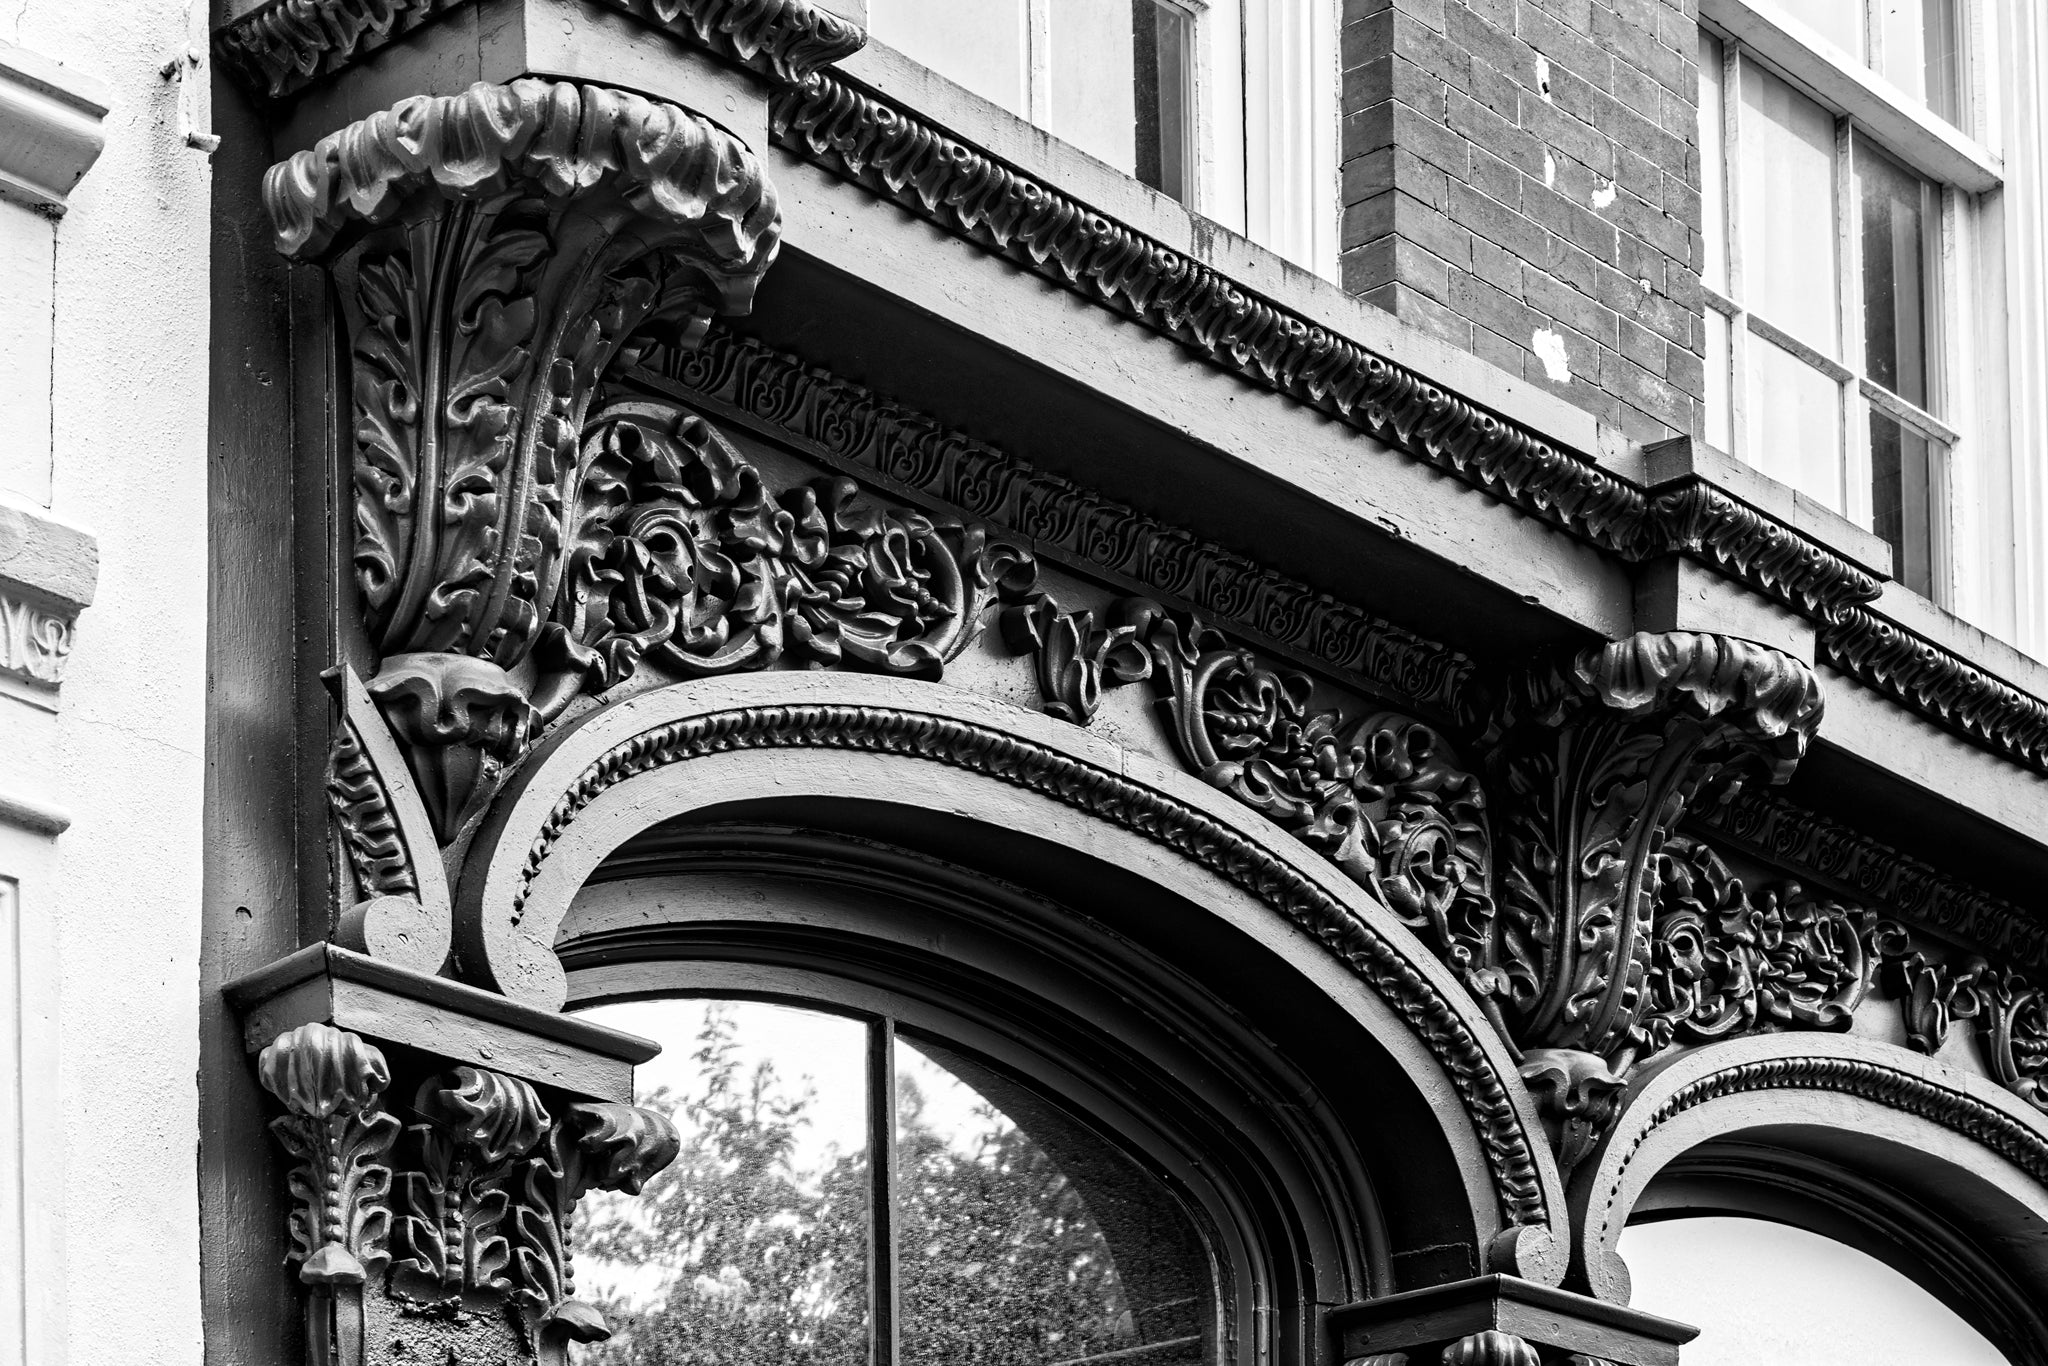 Ornate Iron Storefront Charleston - Black and White Photograph by Keith Dotson. Buy a fine art print.